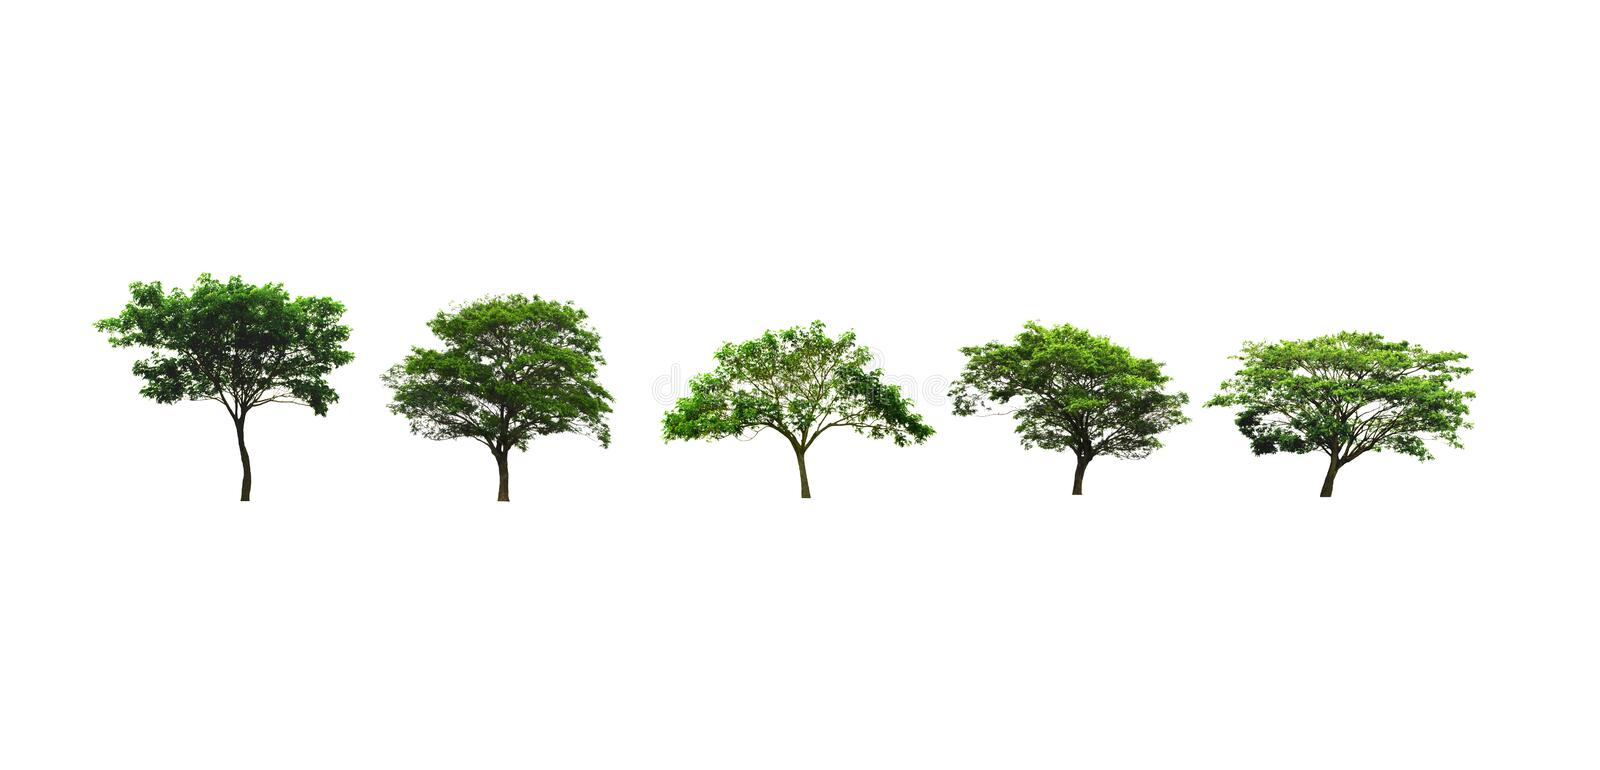 Set of Rain Tree or East Indian walnut tree or silk tree growing up in the countryside isolated on white. Rain Tree or East Indian walnut tree or silk tree stock images